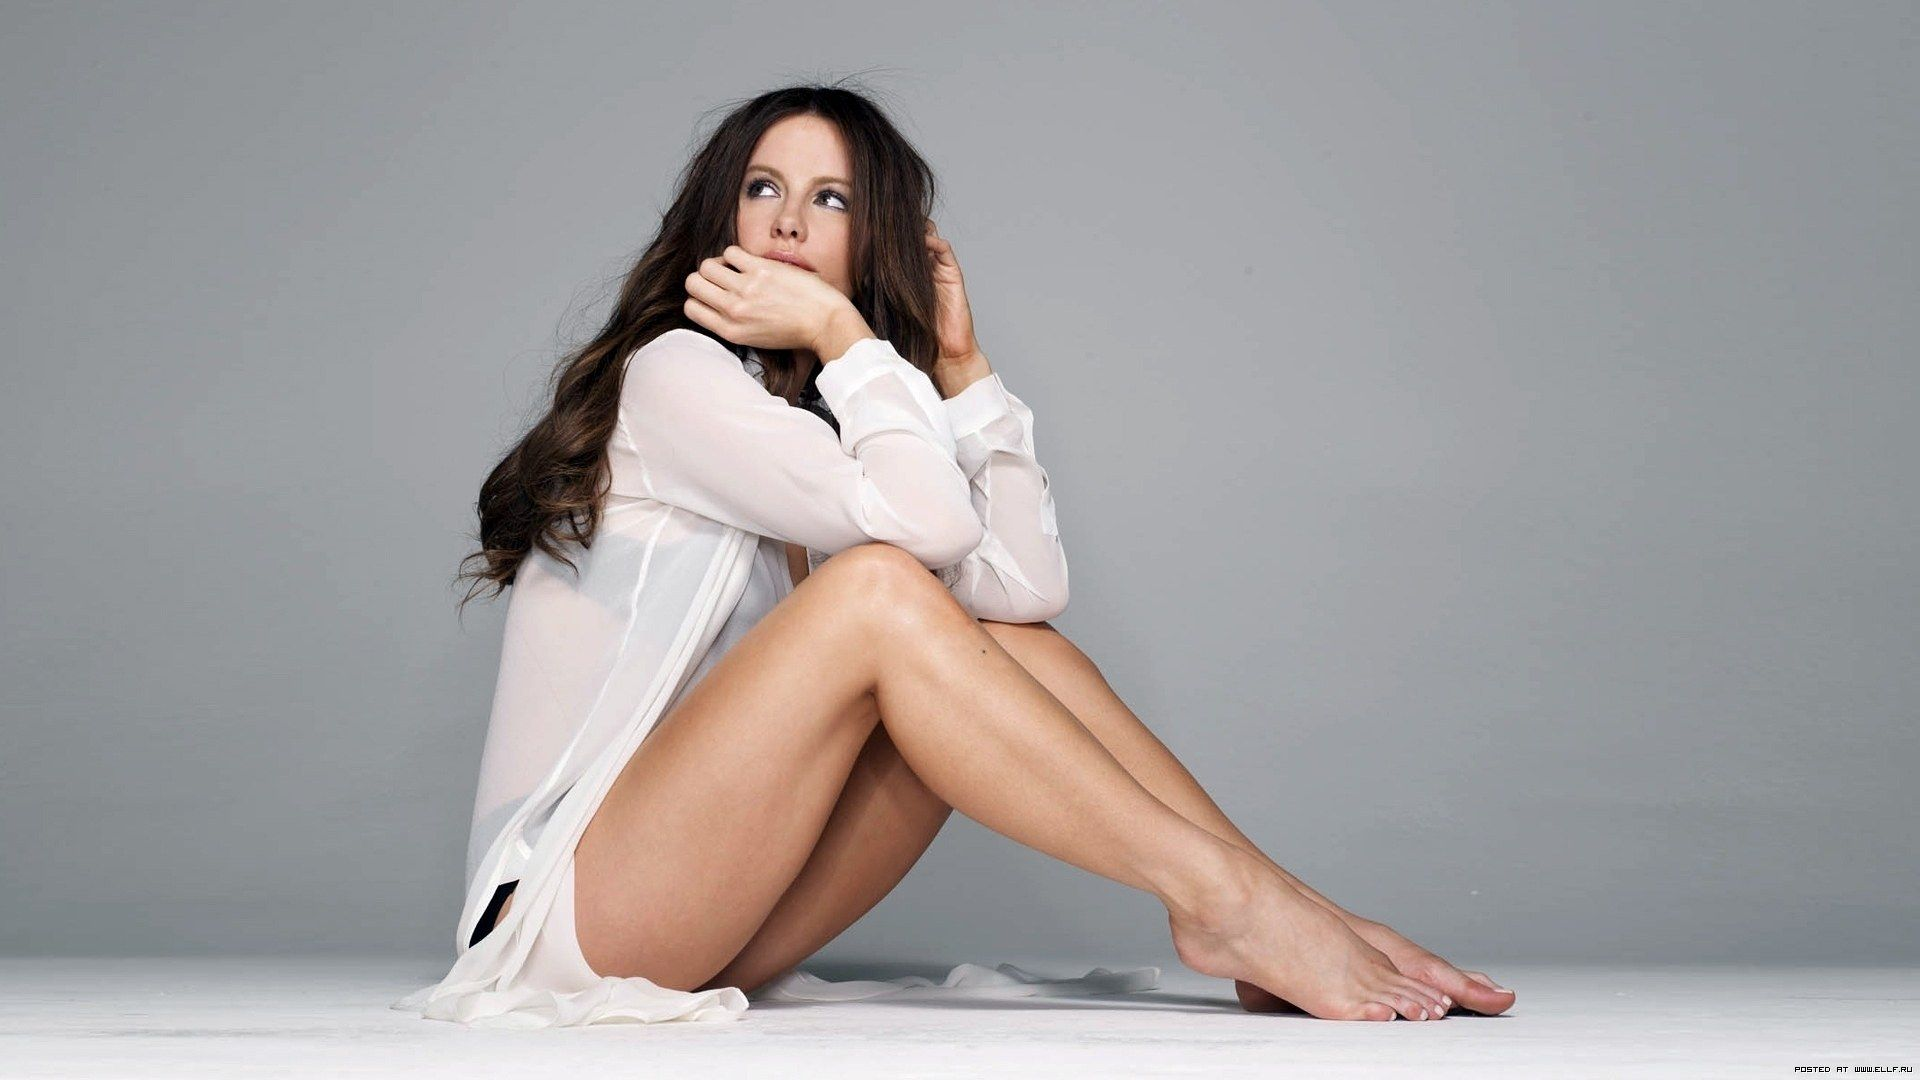 Sexy Kate Beckinsale Legs 1294048 Hd Wallpaper